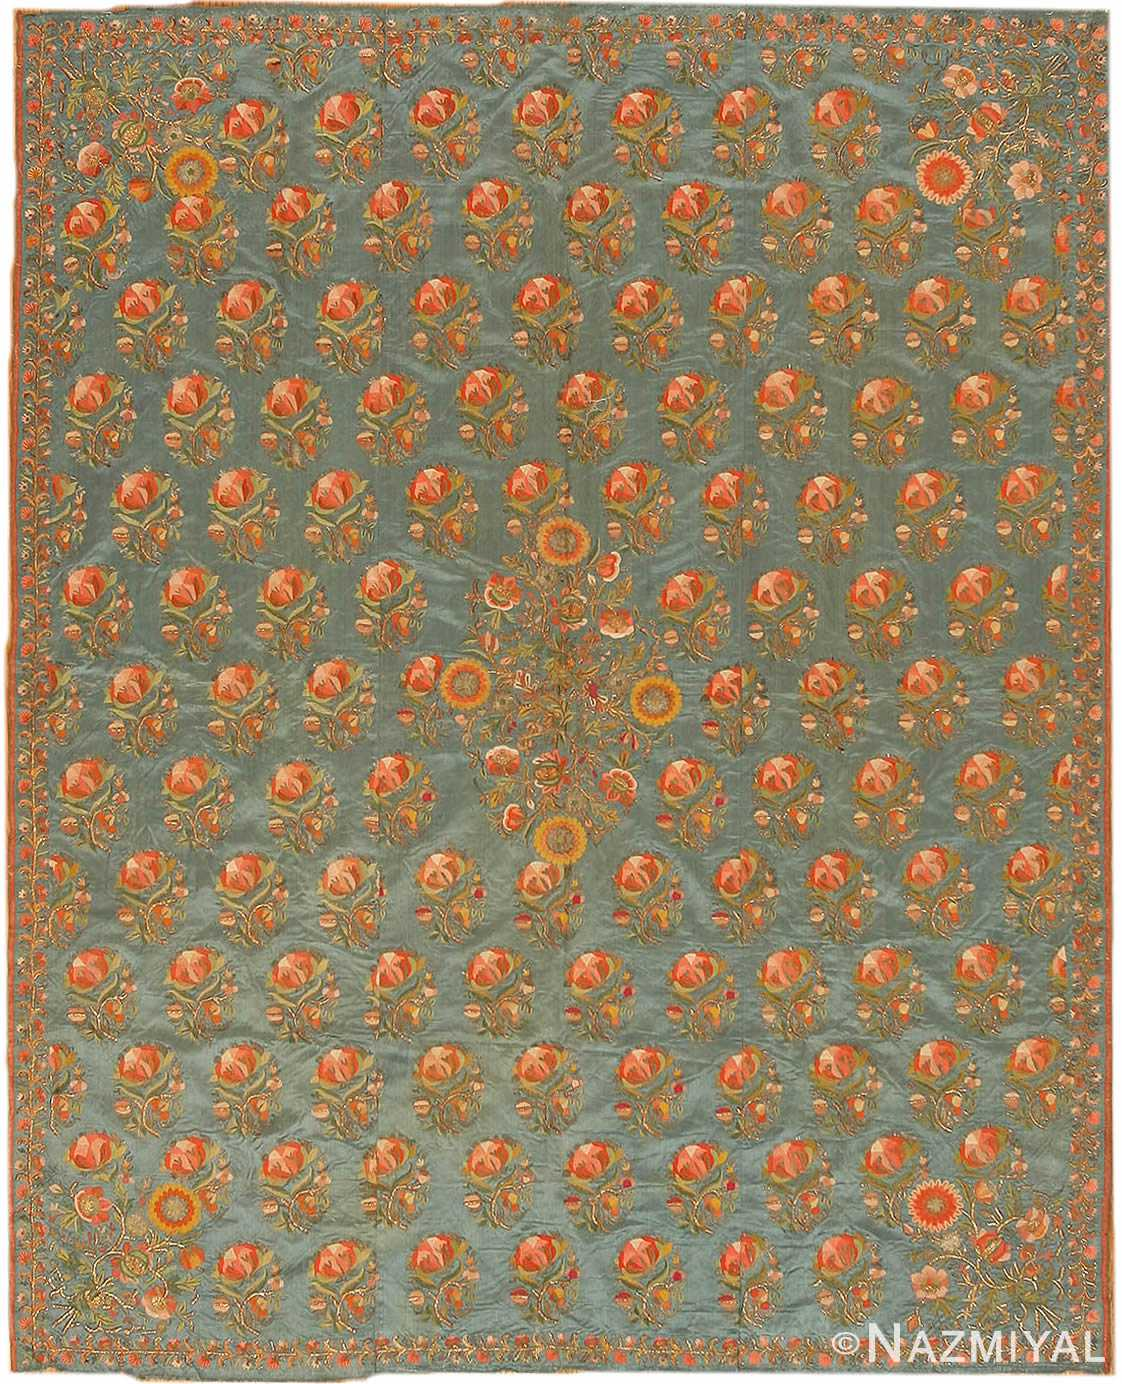 Antique Ottoman Embroidery Turkish Rug 42621 Nazmiyal